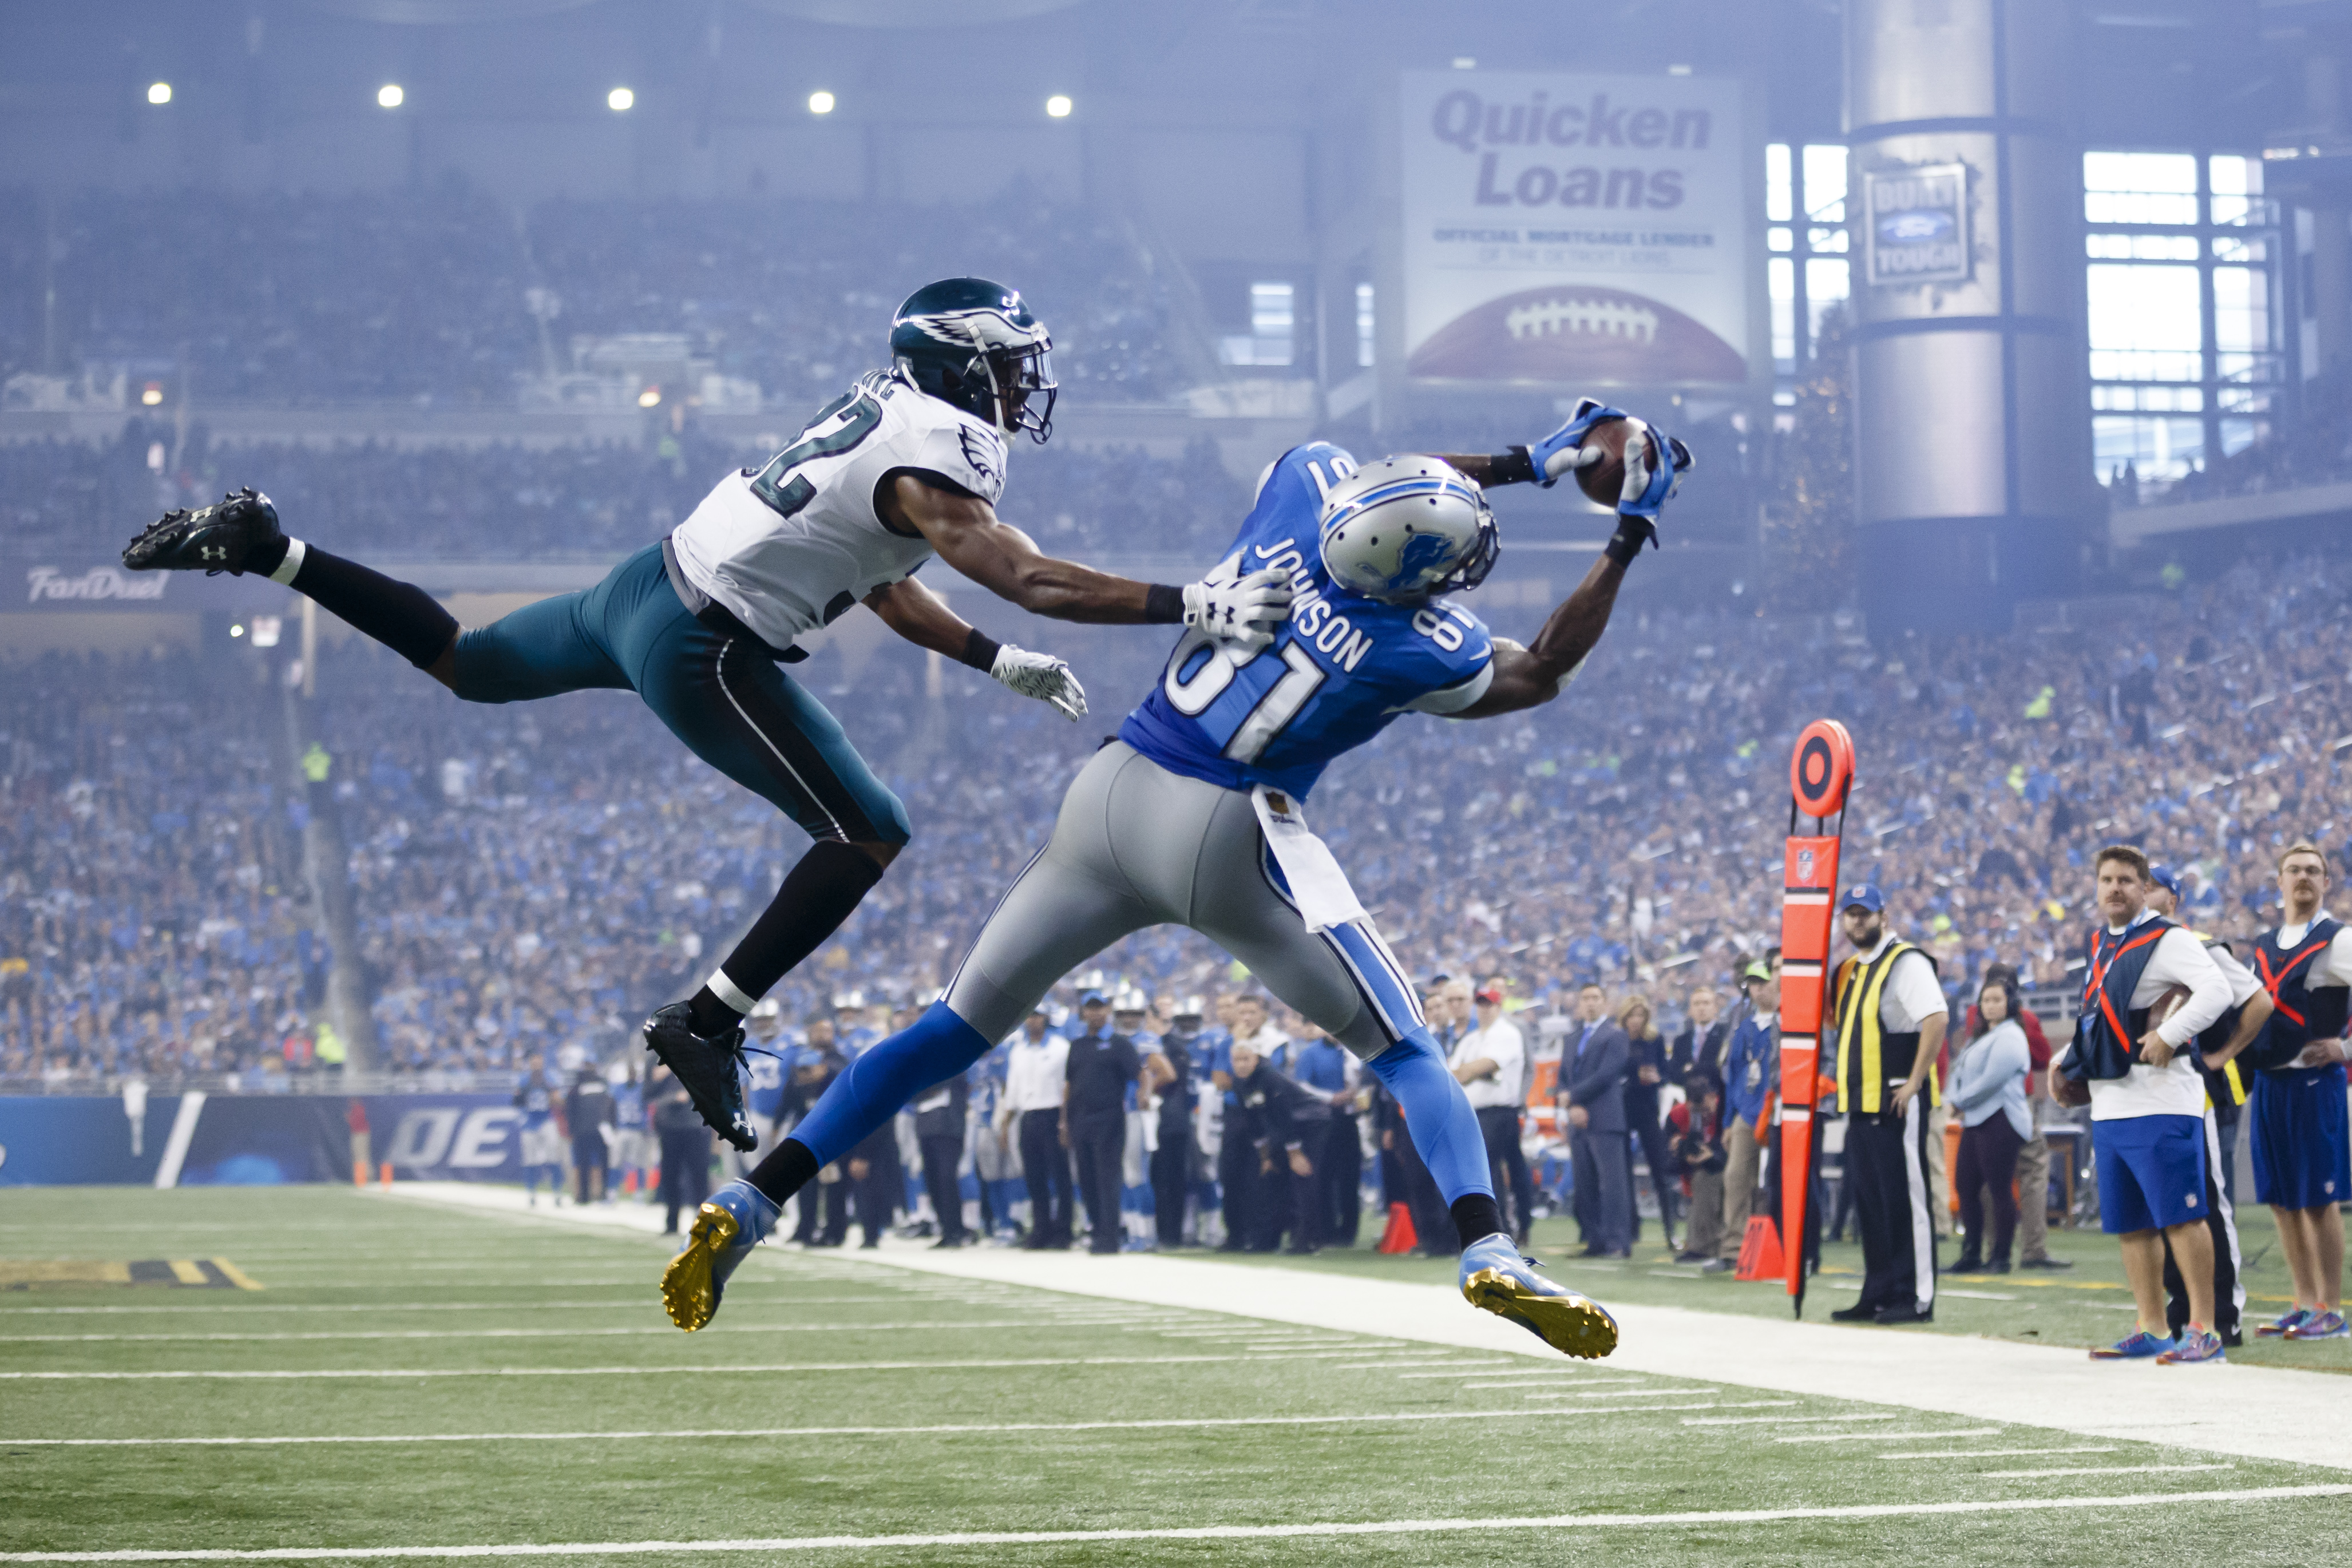 FILE - In this Nov. 26, 2015, file photo, Detroit Lions wide receiver Calvin Johnson (81), defended by Philadelphia Eagles cornerback Eric Rowe (32) , catches a pass for a touchdown during the second half of an NFL football game, in Detroit. Calvin Johnso